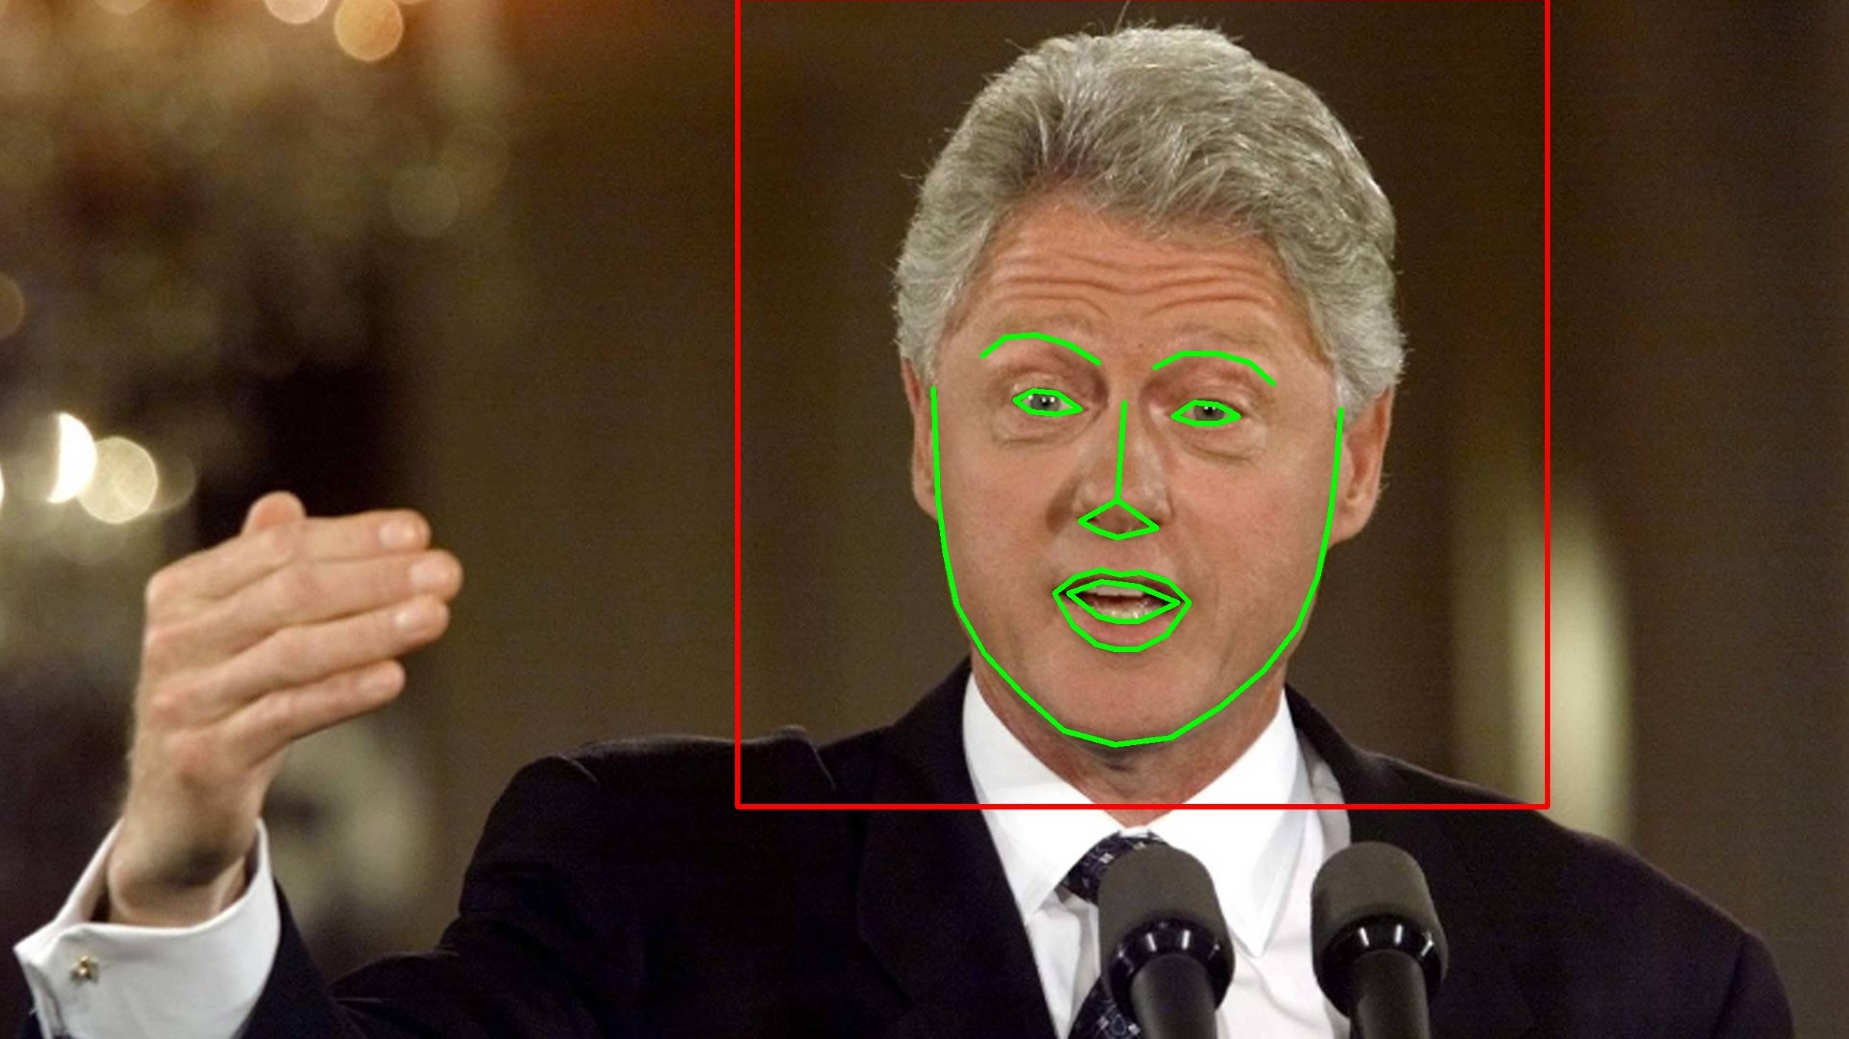 bill_clinton_01_landmarks.jpg